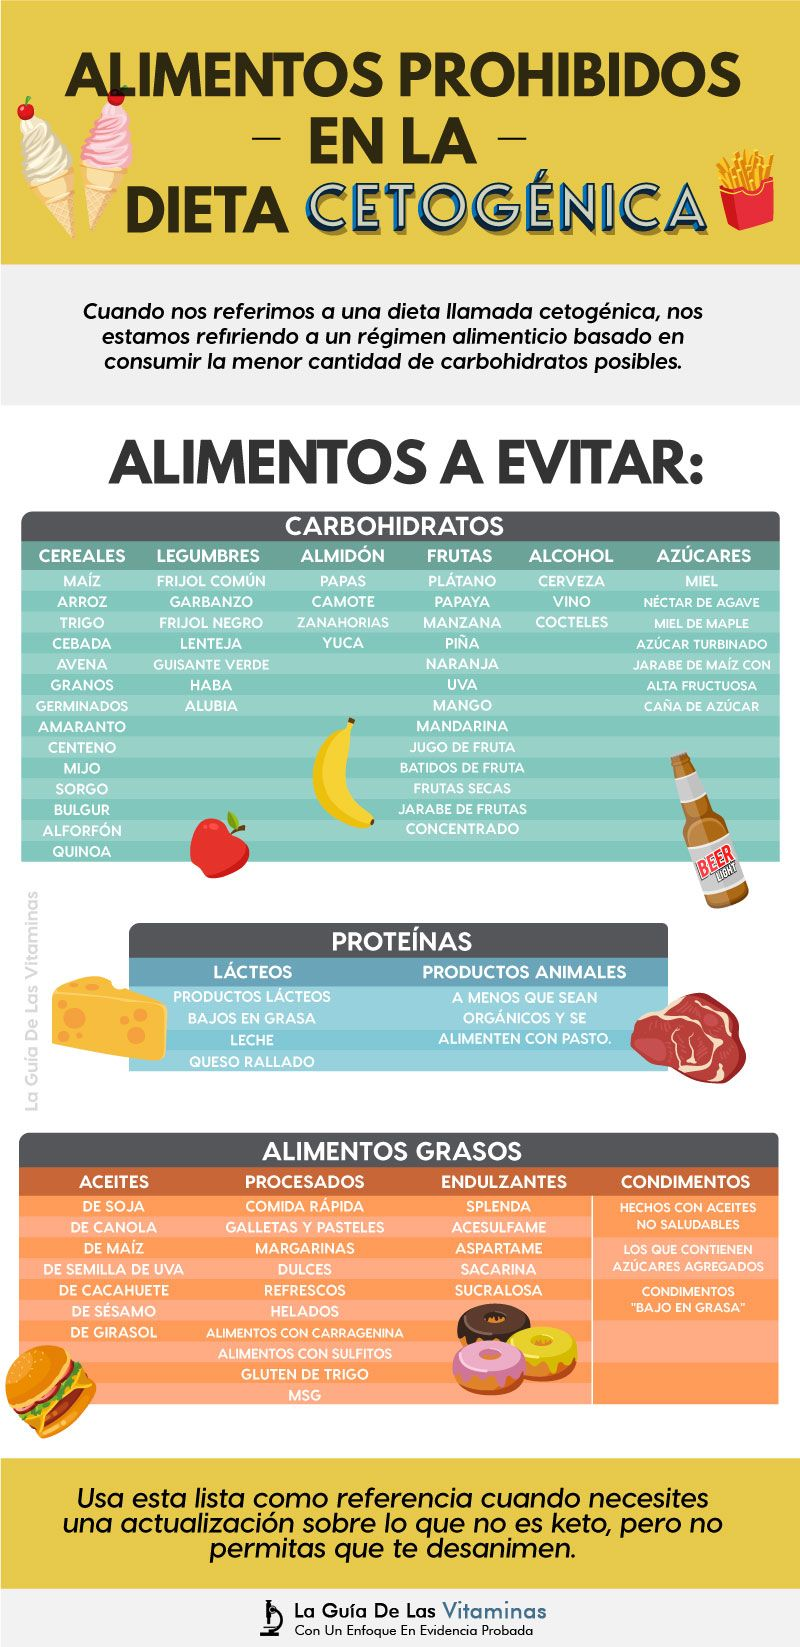 Alimentos Prohibidos En La Dieta Cetogenica With Images Detox